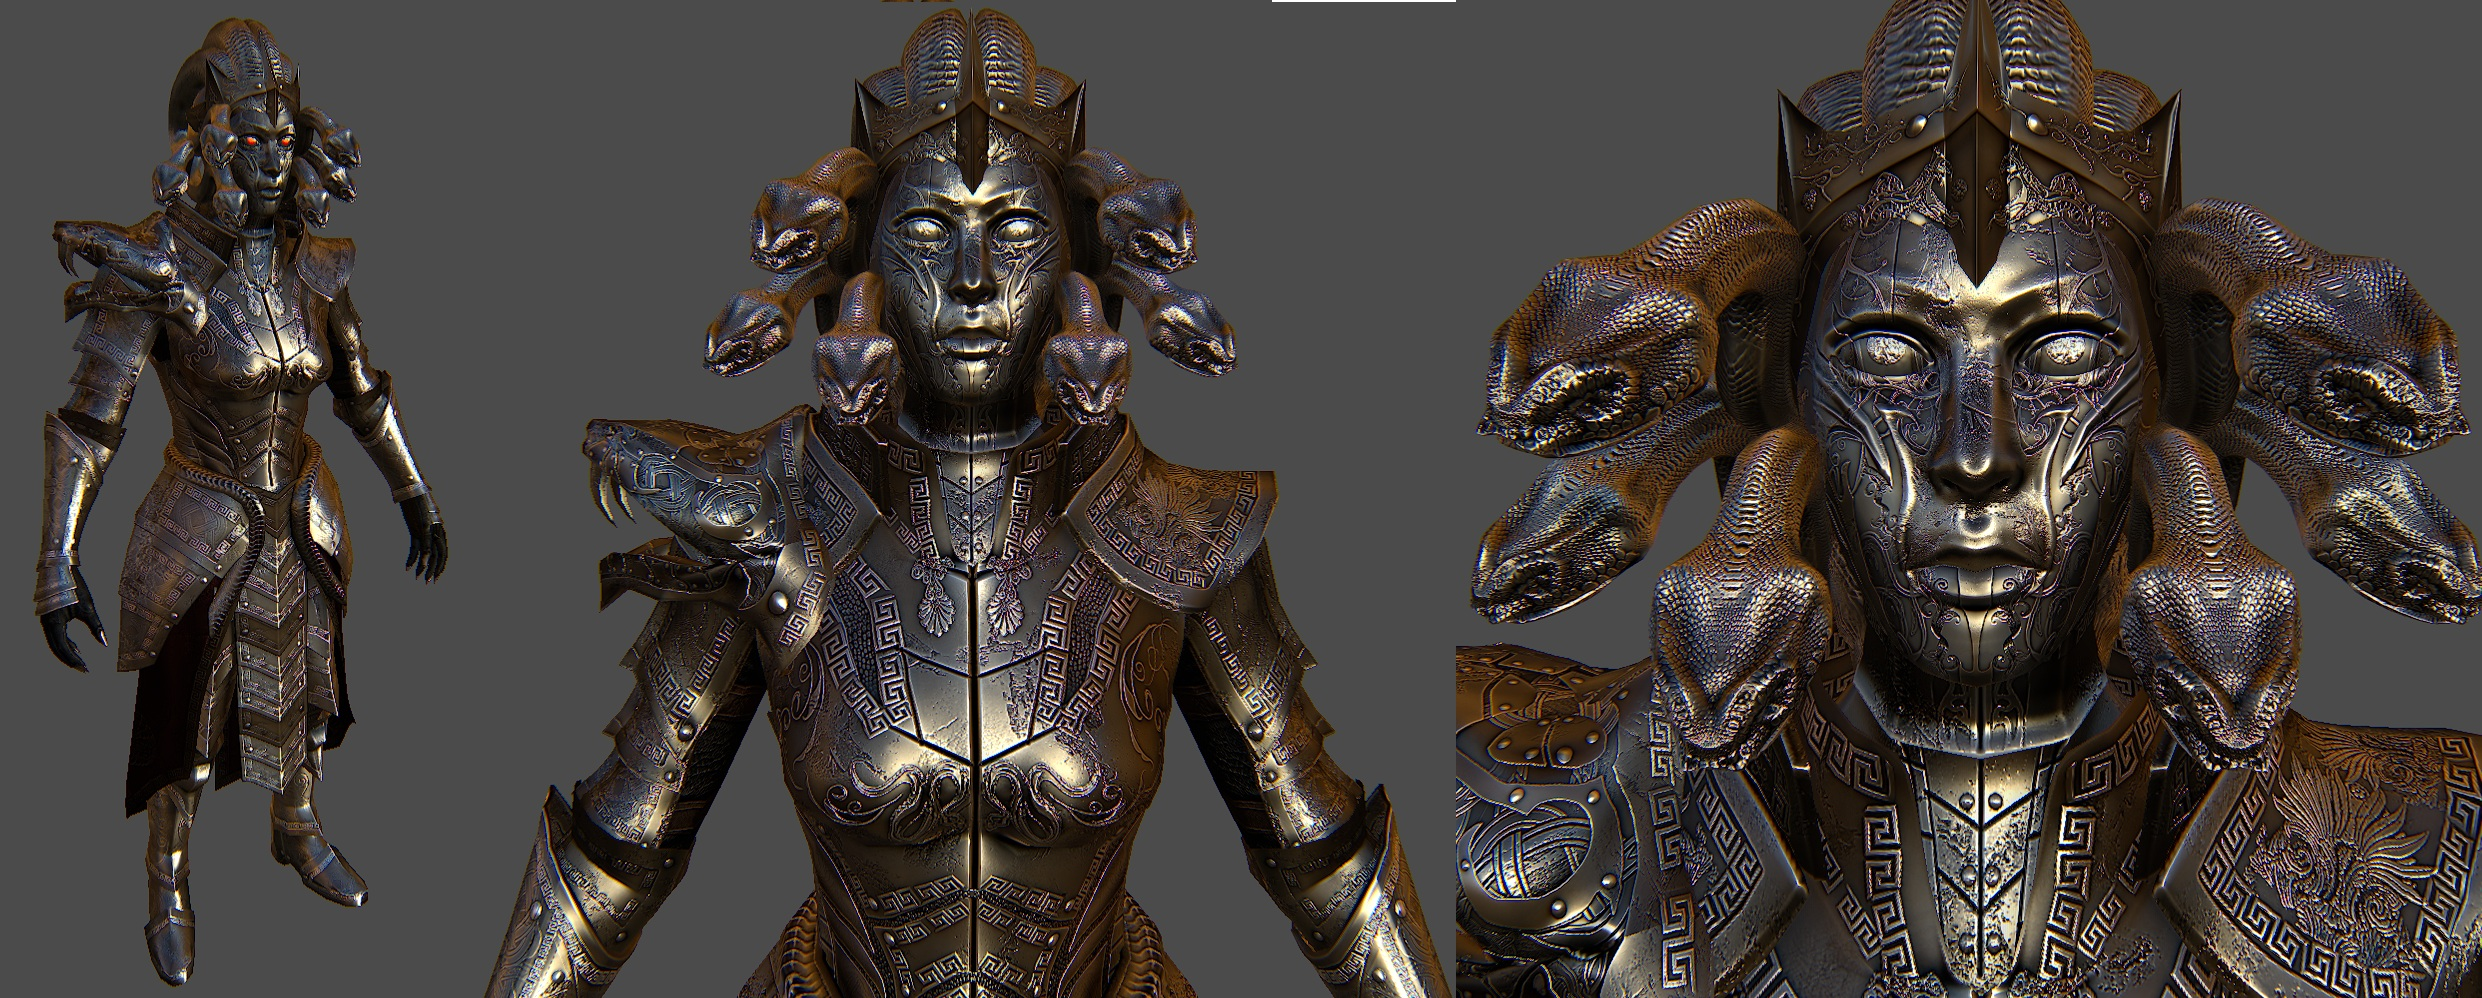 Medusa Armor For Skyrim 2 by Zerofrust